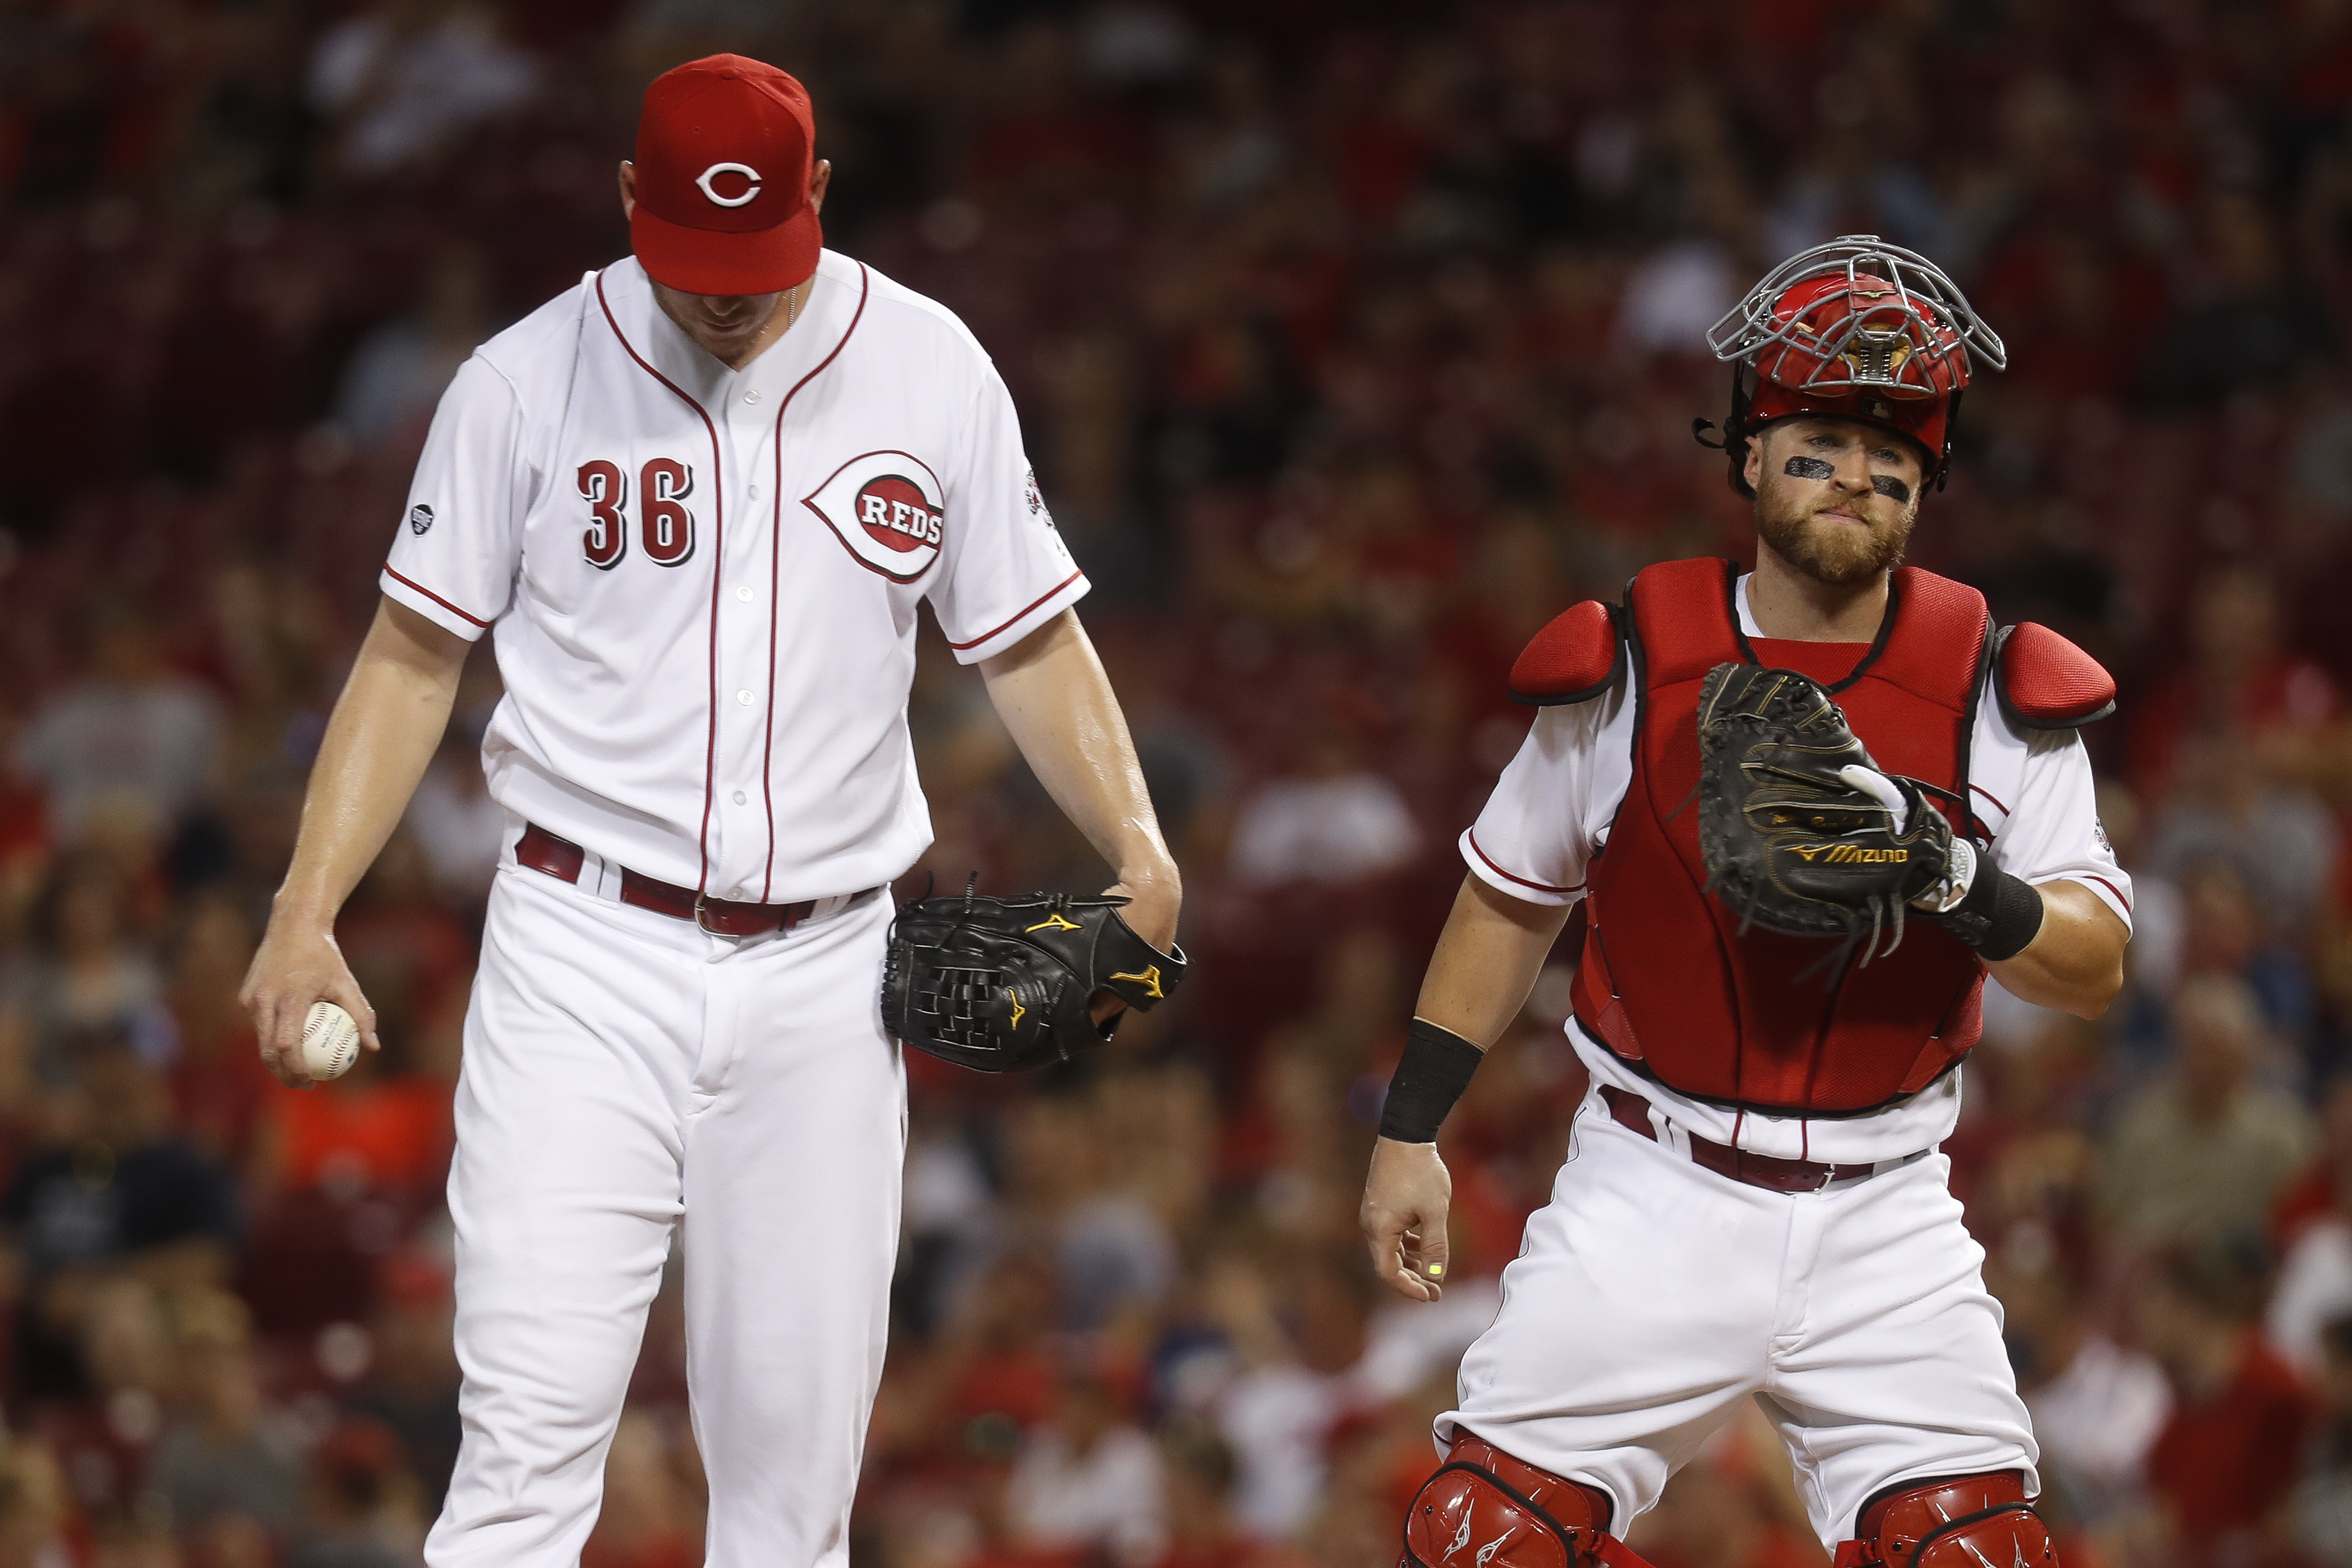 Cincinnati Reds relief pitcher Blake Wood (36) meets with catcher Tucker Barnhart, right, after giving up a solo home run to St. Louis Cardinals' Tommy Pham during the eighth inning of a baseball game, Tuesday, Aug. 2, 2016, in Cincinnati. (AP Photo/John